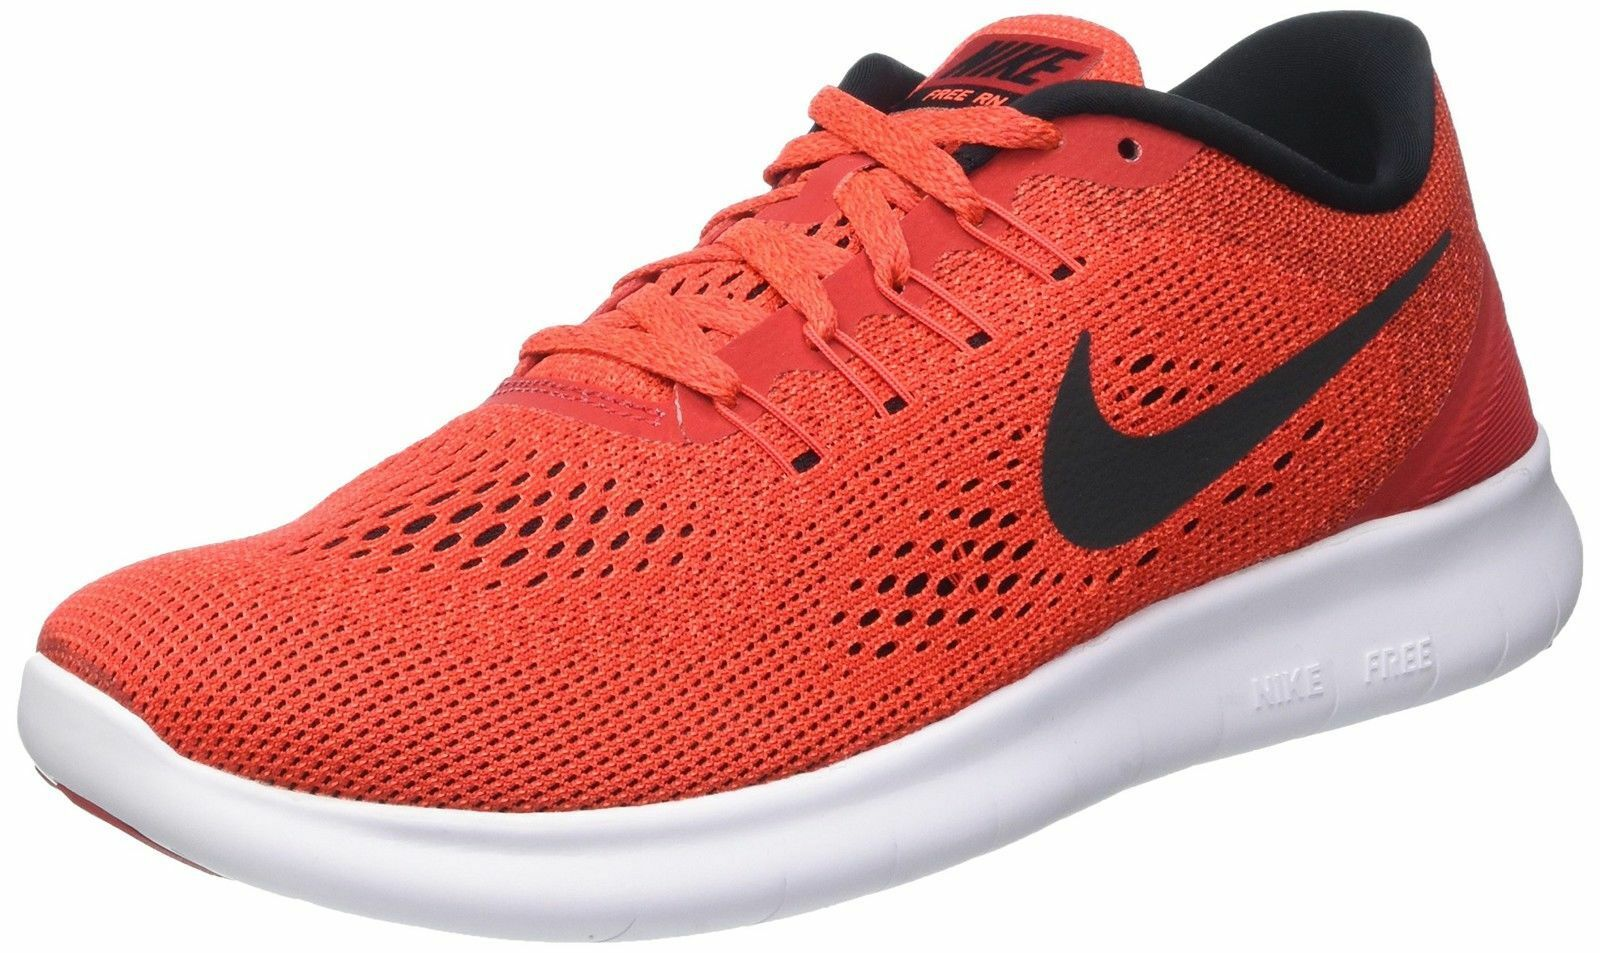 MEN'S NIKE FREE RN RUNNING SHOES SNEAKERS 831508 600 RED / BLACK SIZE 11.5 NEW